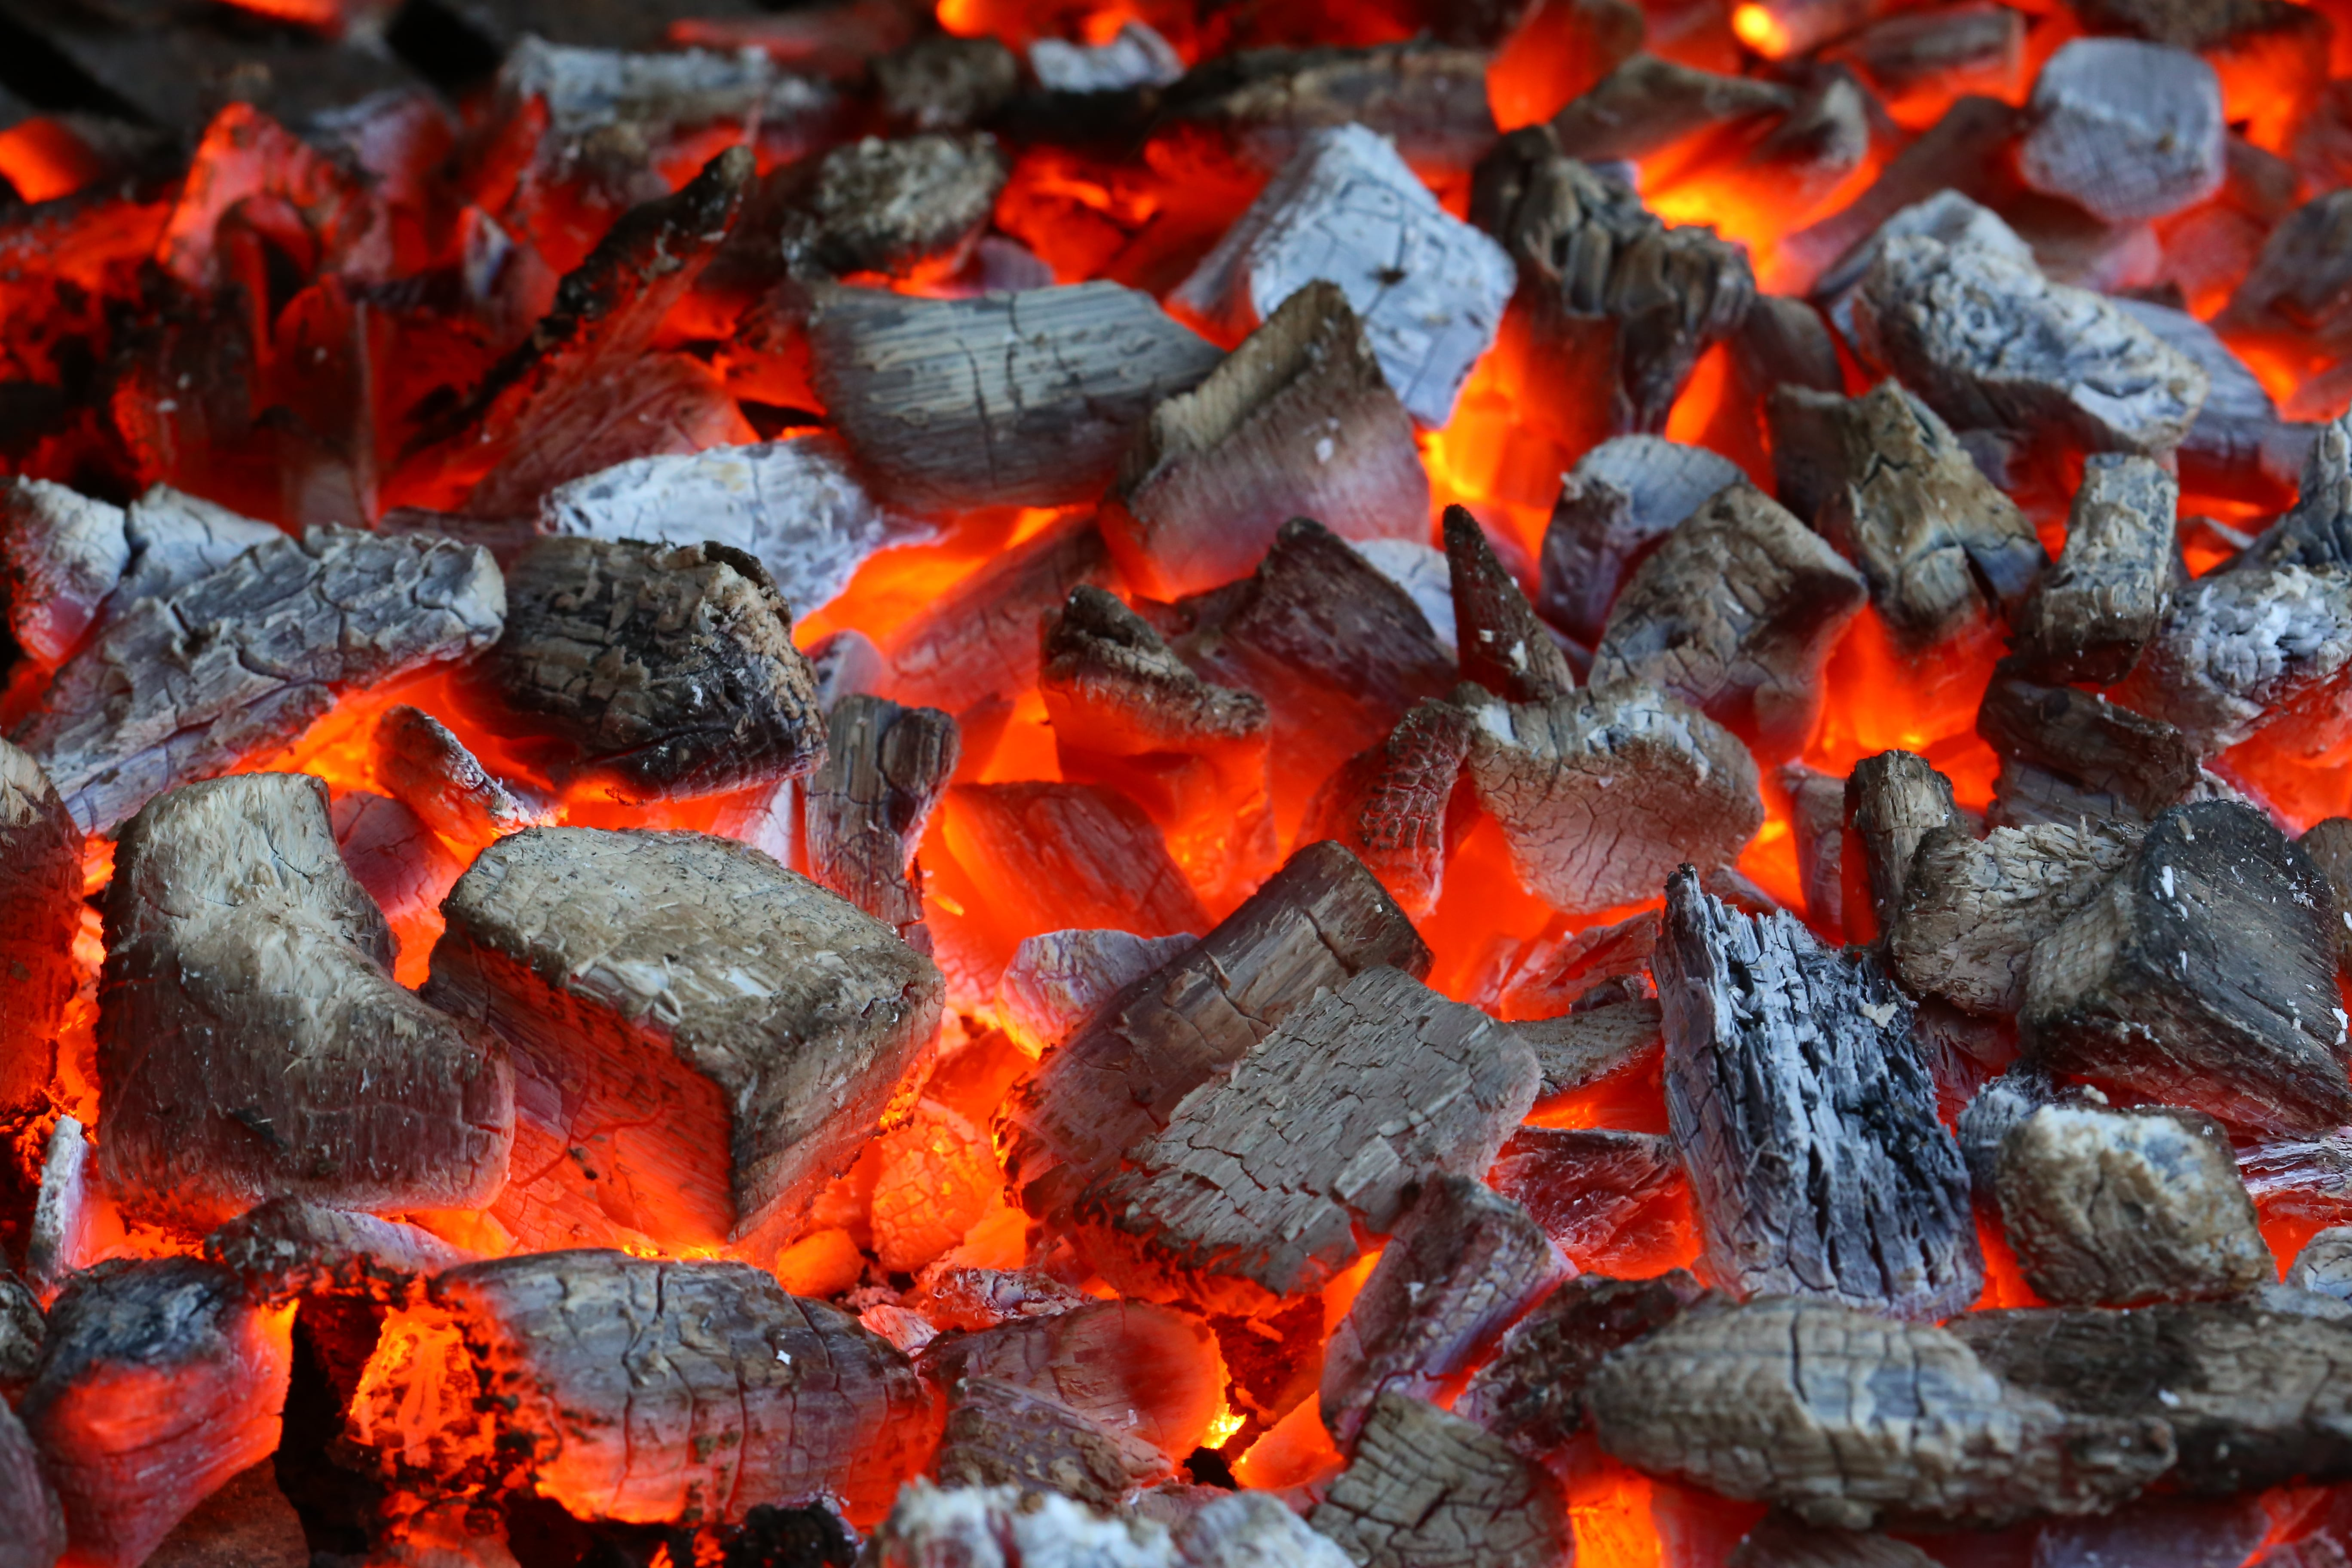 How To Start A Charcoal Grill Burning Charcoal The